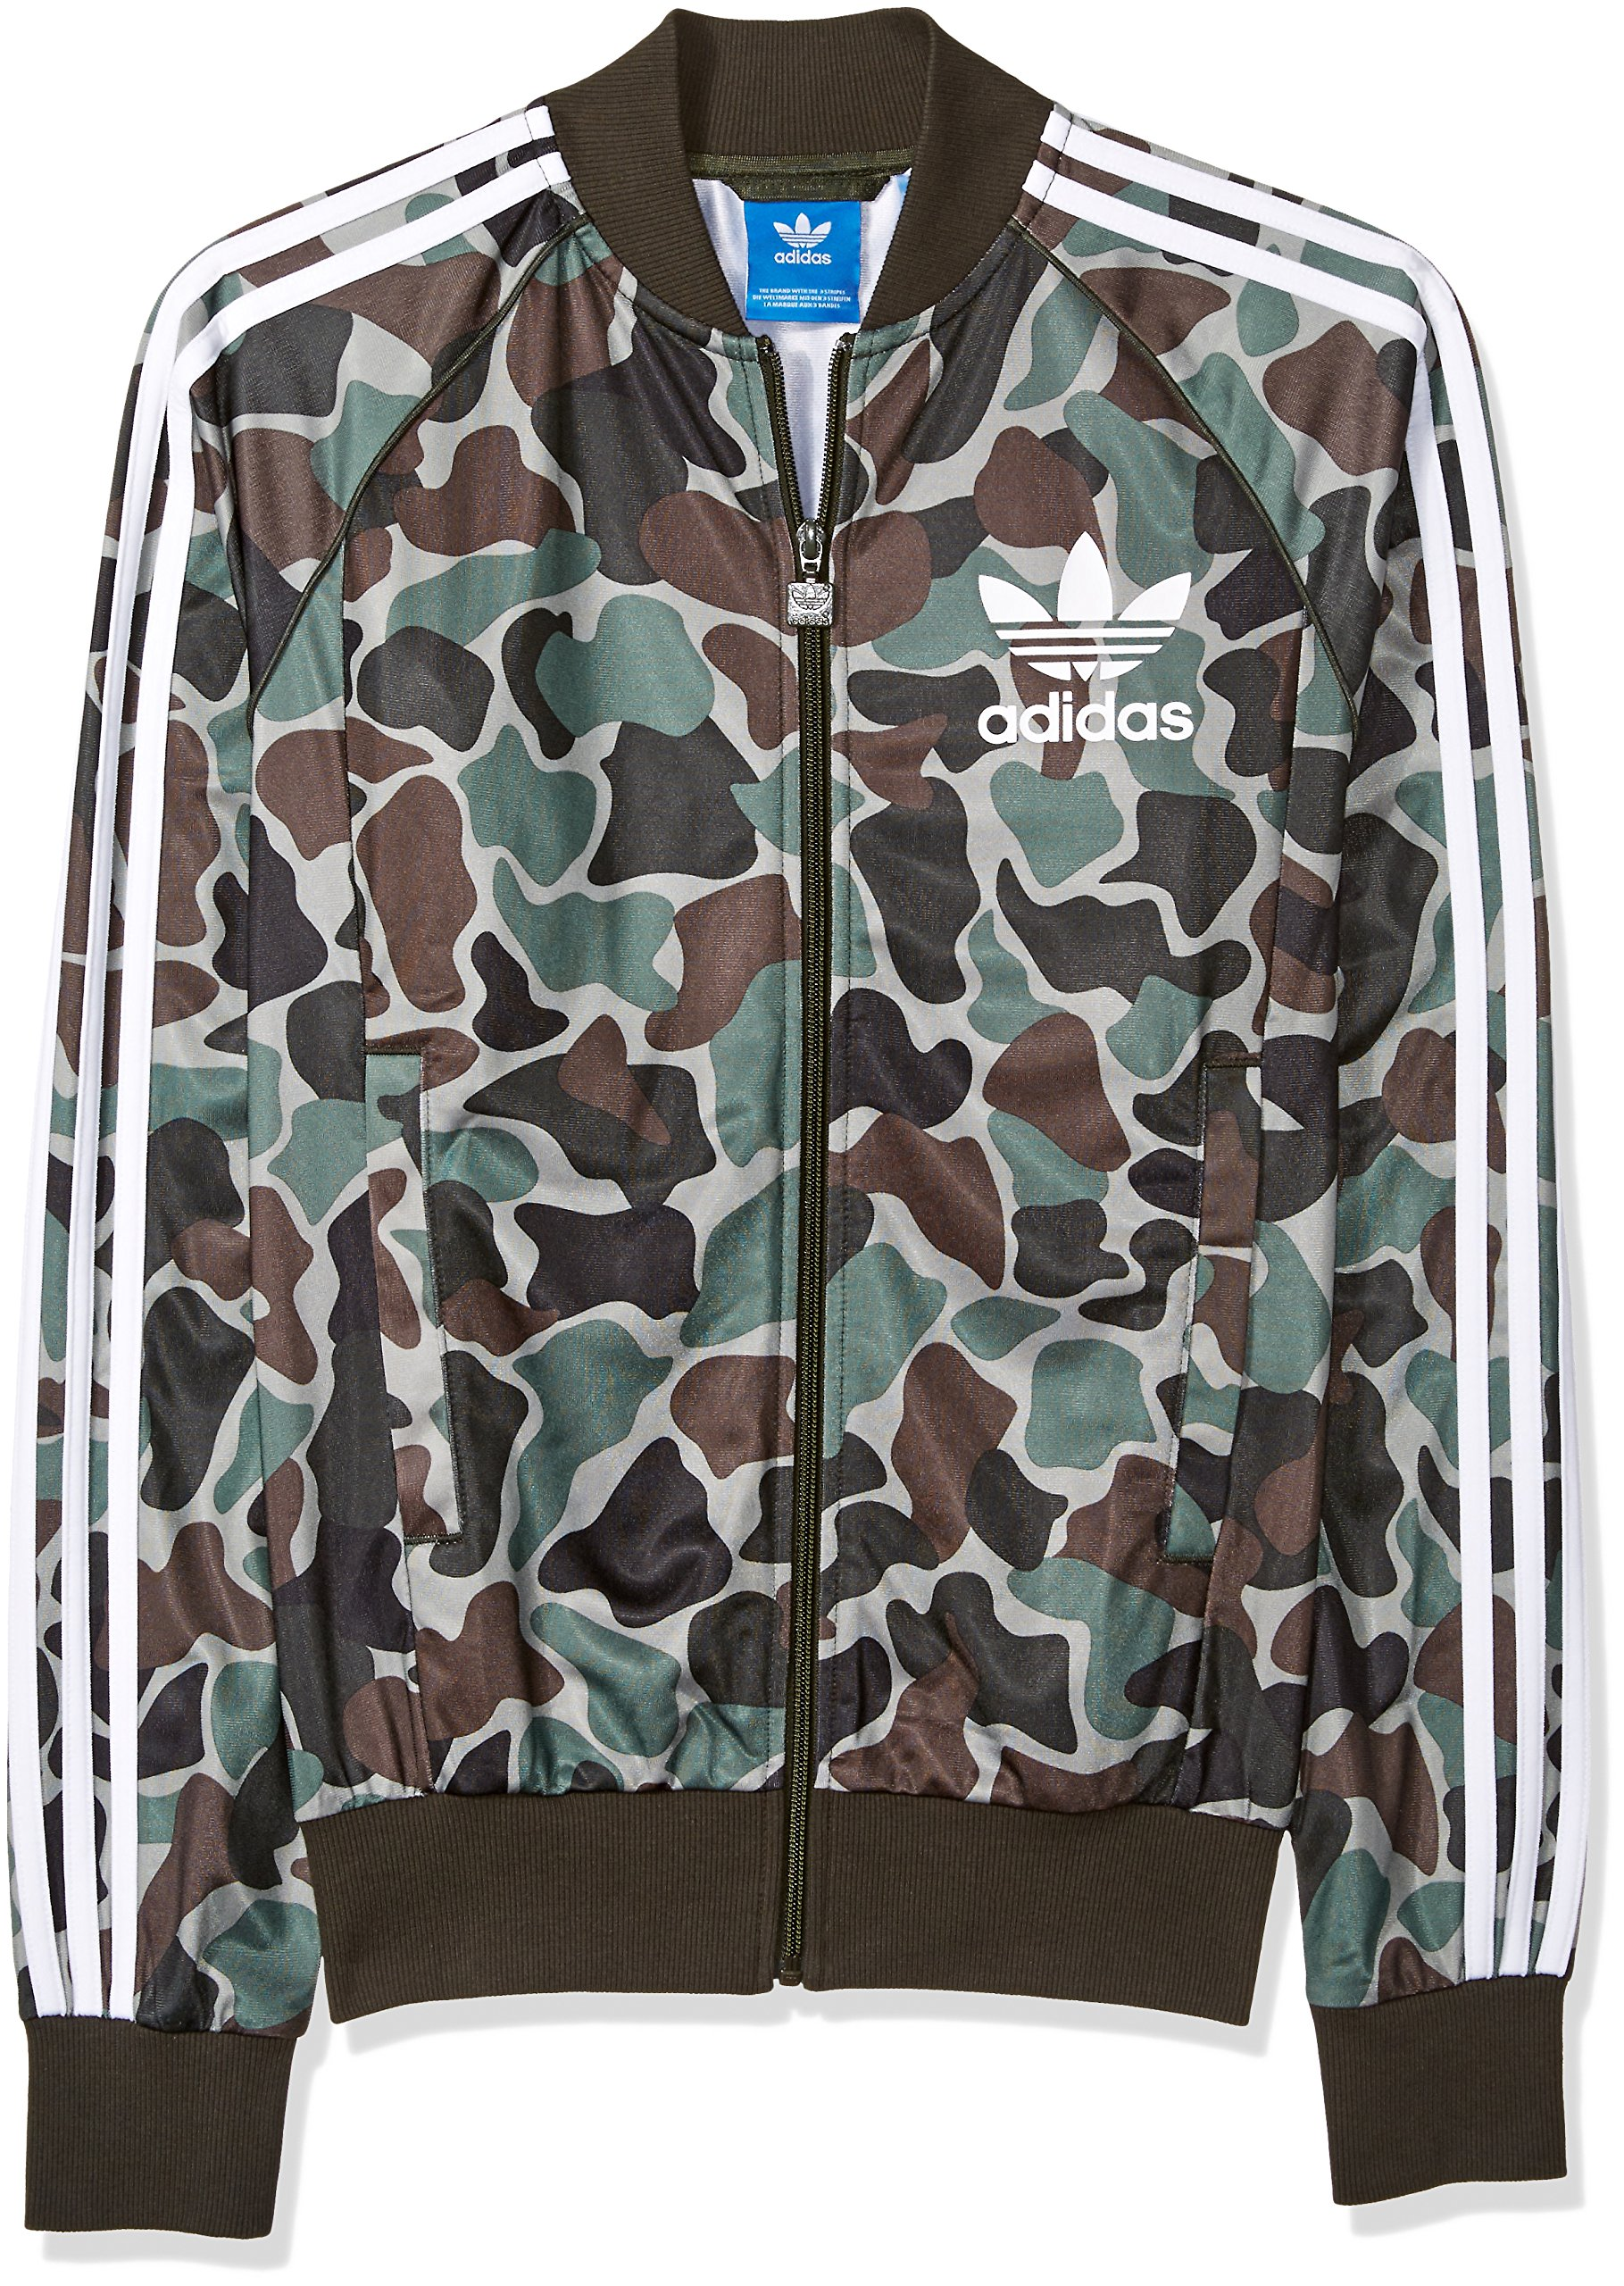 adidas Originals Men's Superstar Track Jacket,